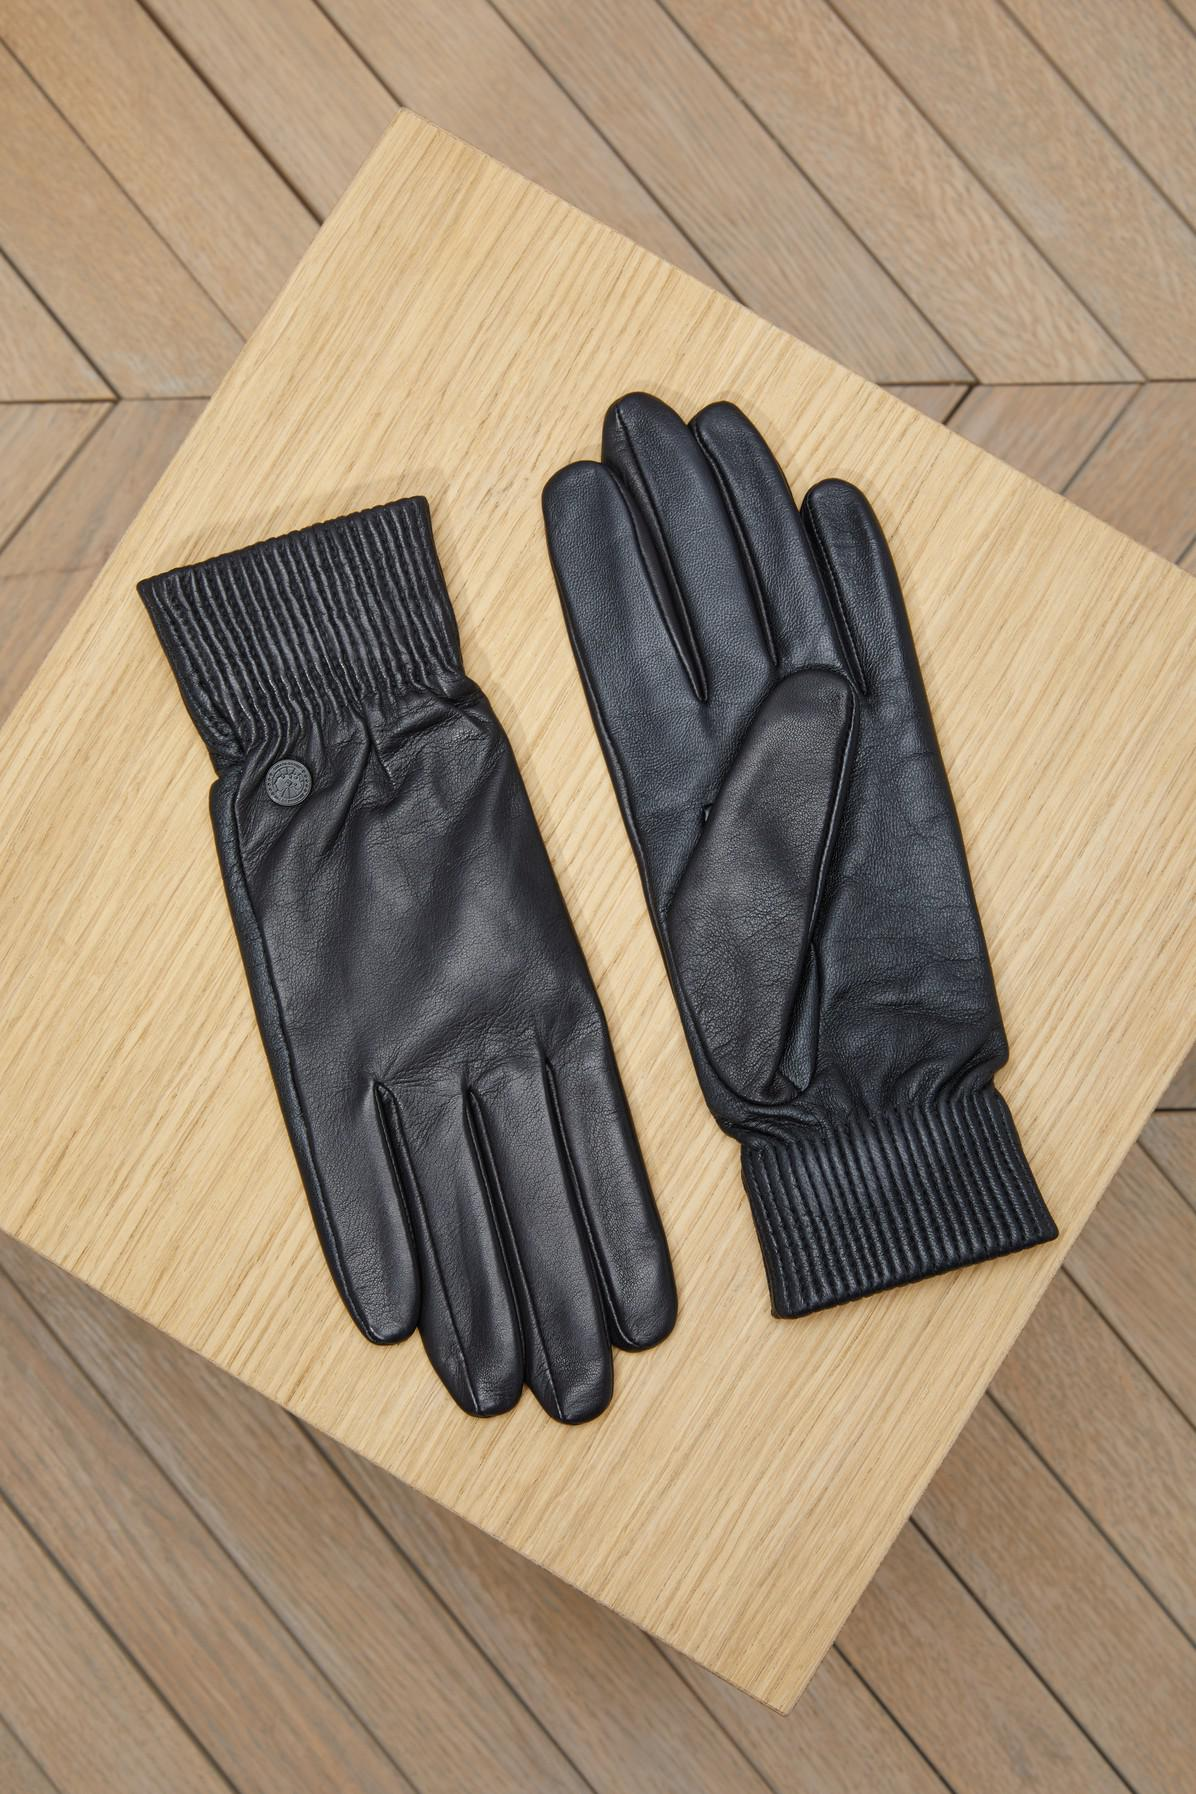 7d244fe98197 Canada Goose Womens Leather Rib Glove